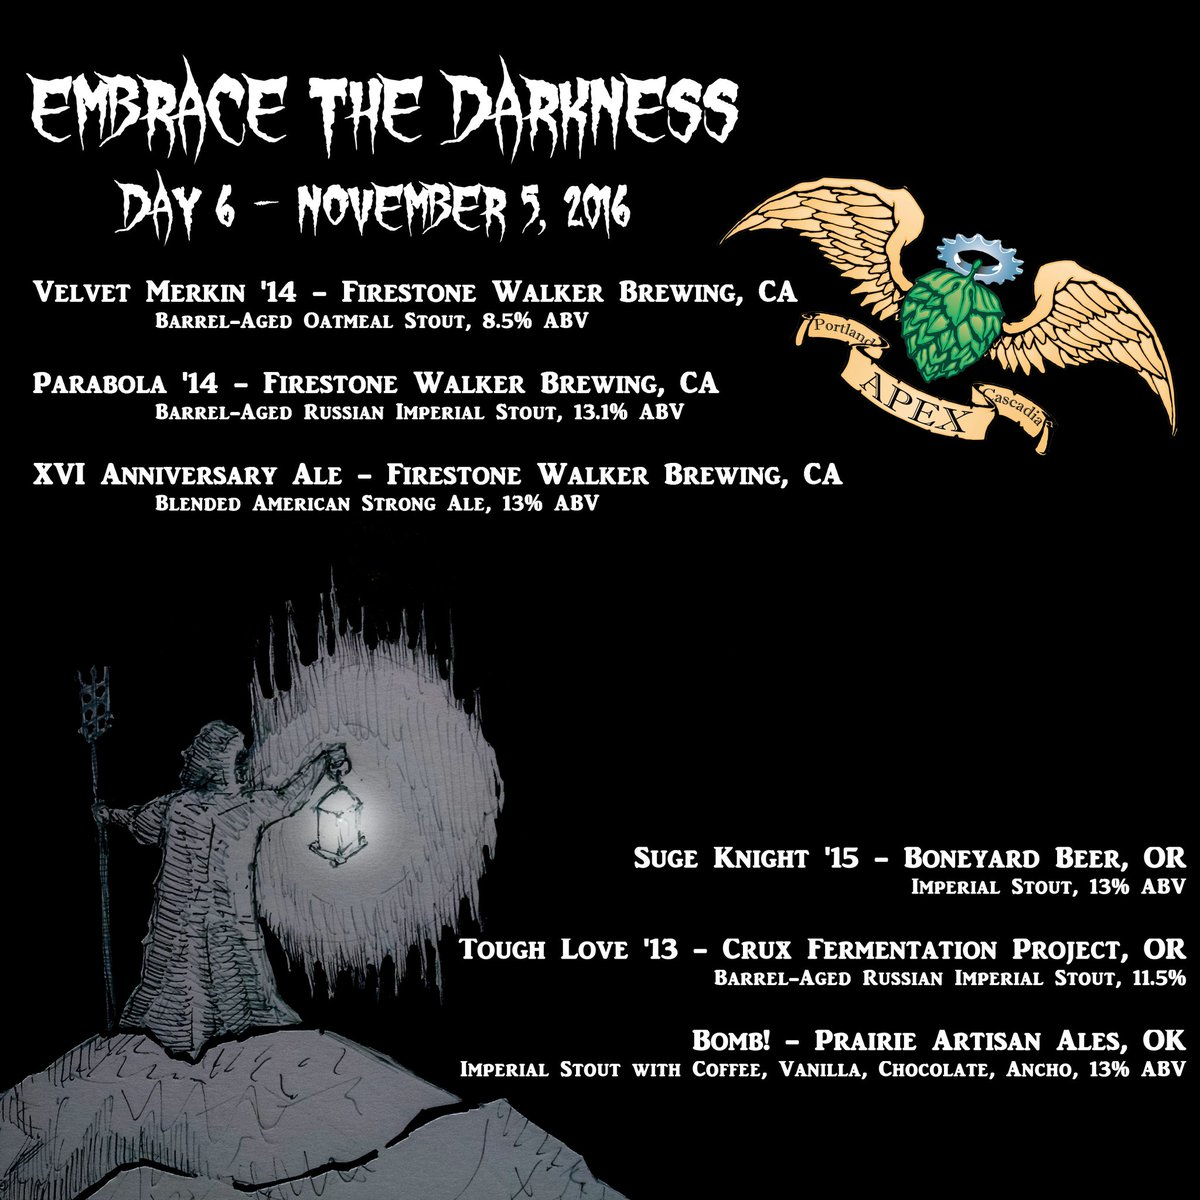 APEX Embrace the Darkness 2016 - Day 6